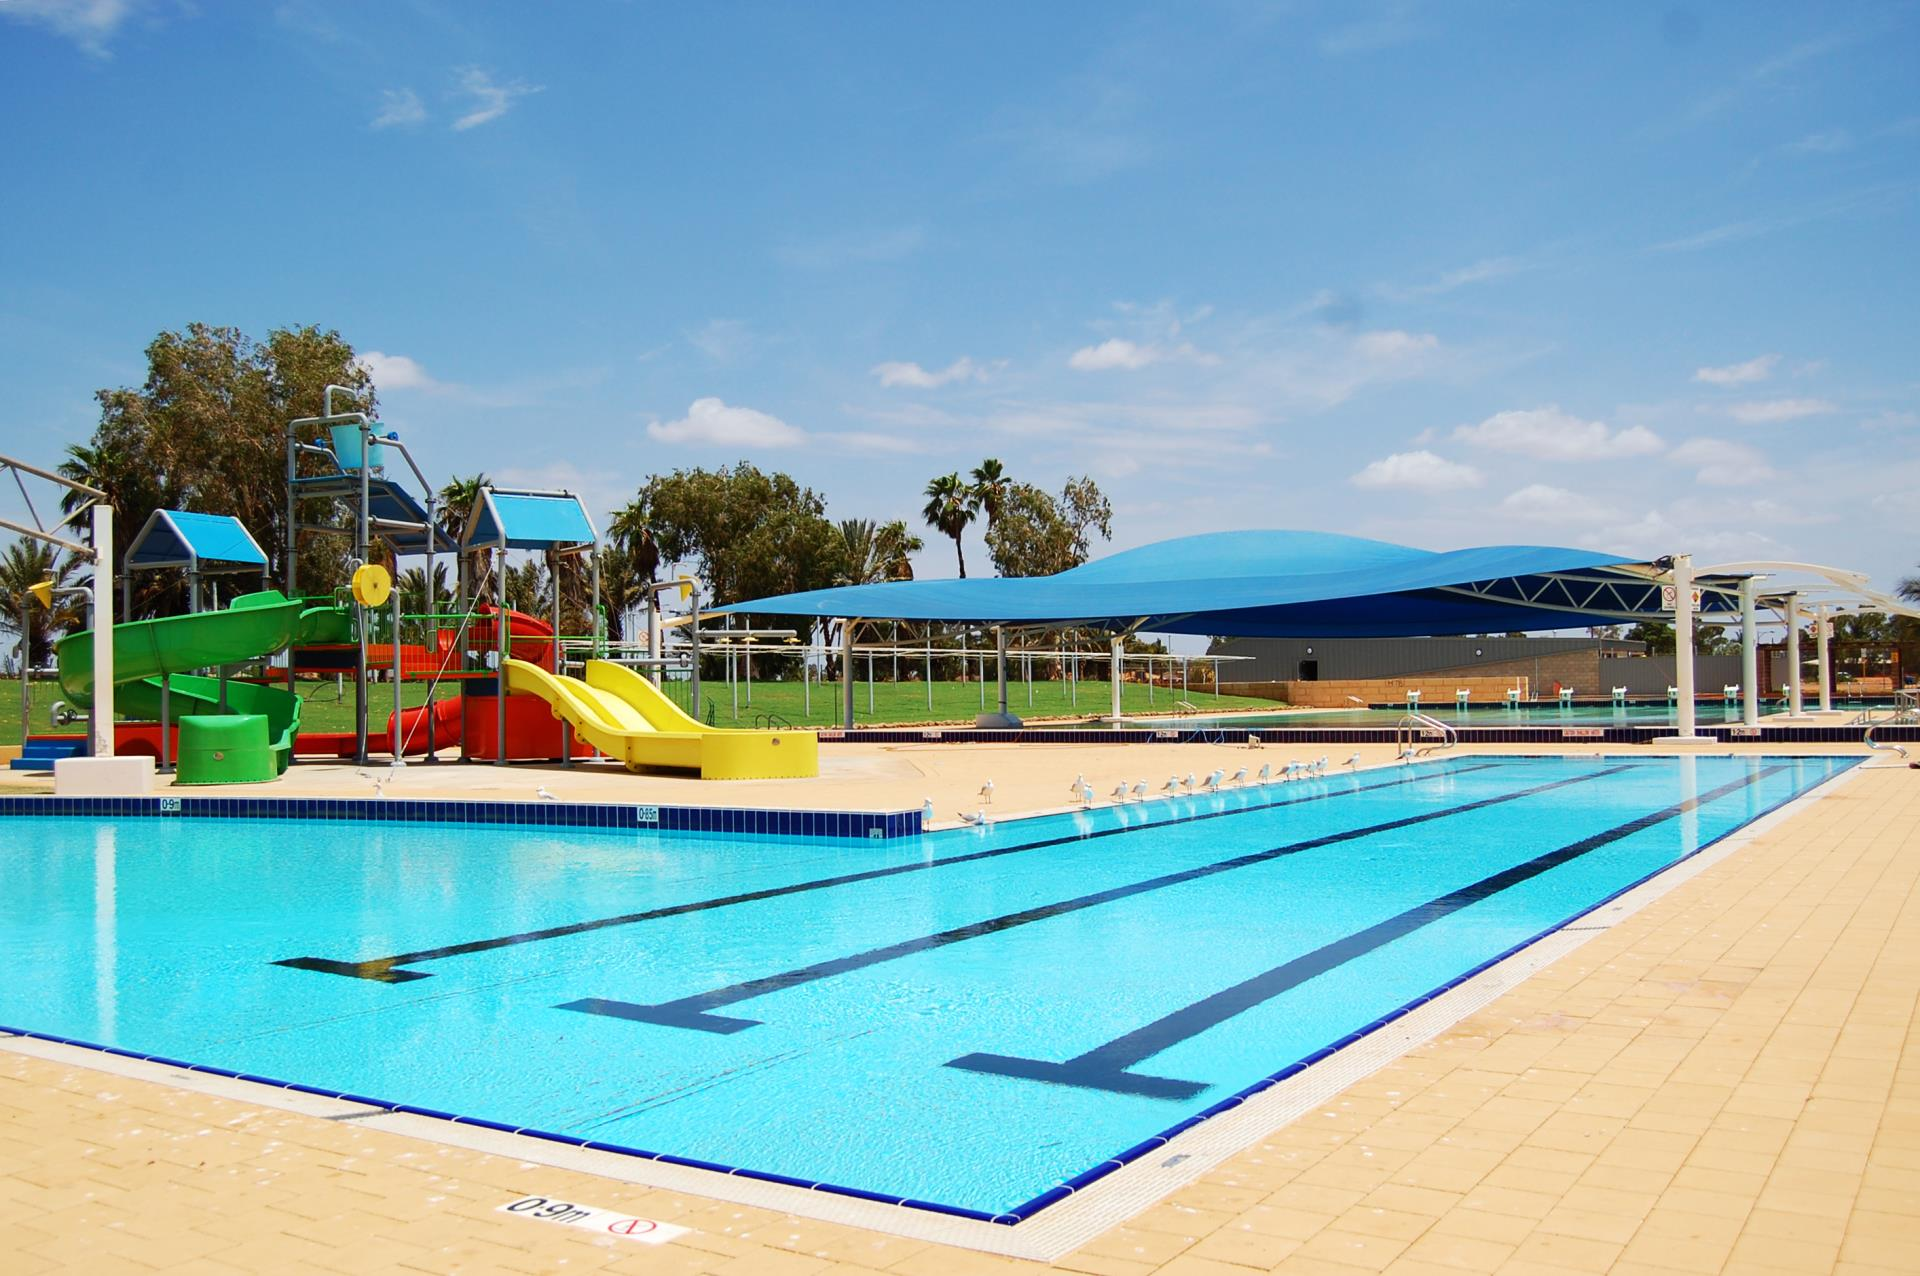 Council approves tender for works at South Hedland Aquatic Centre